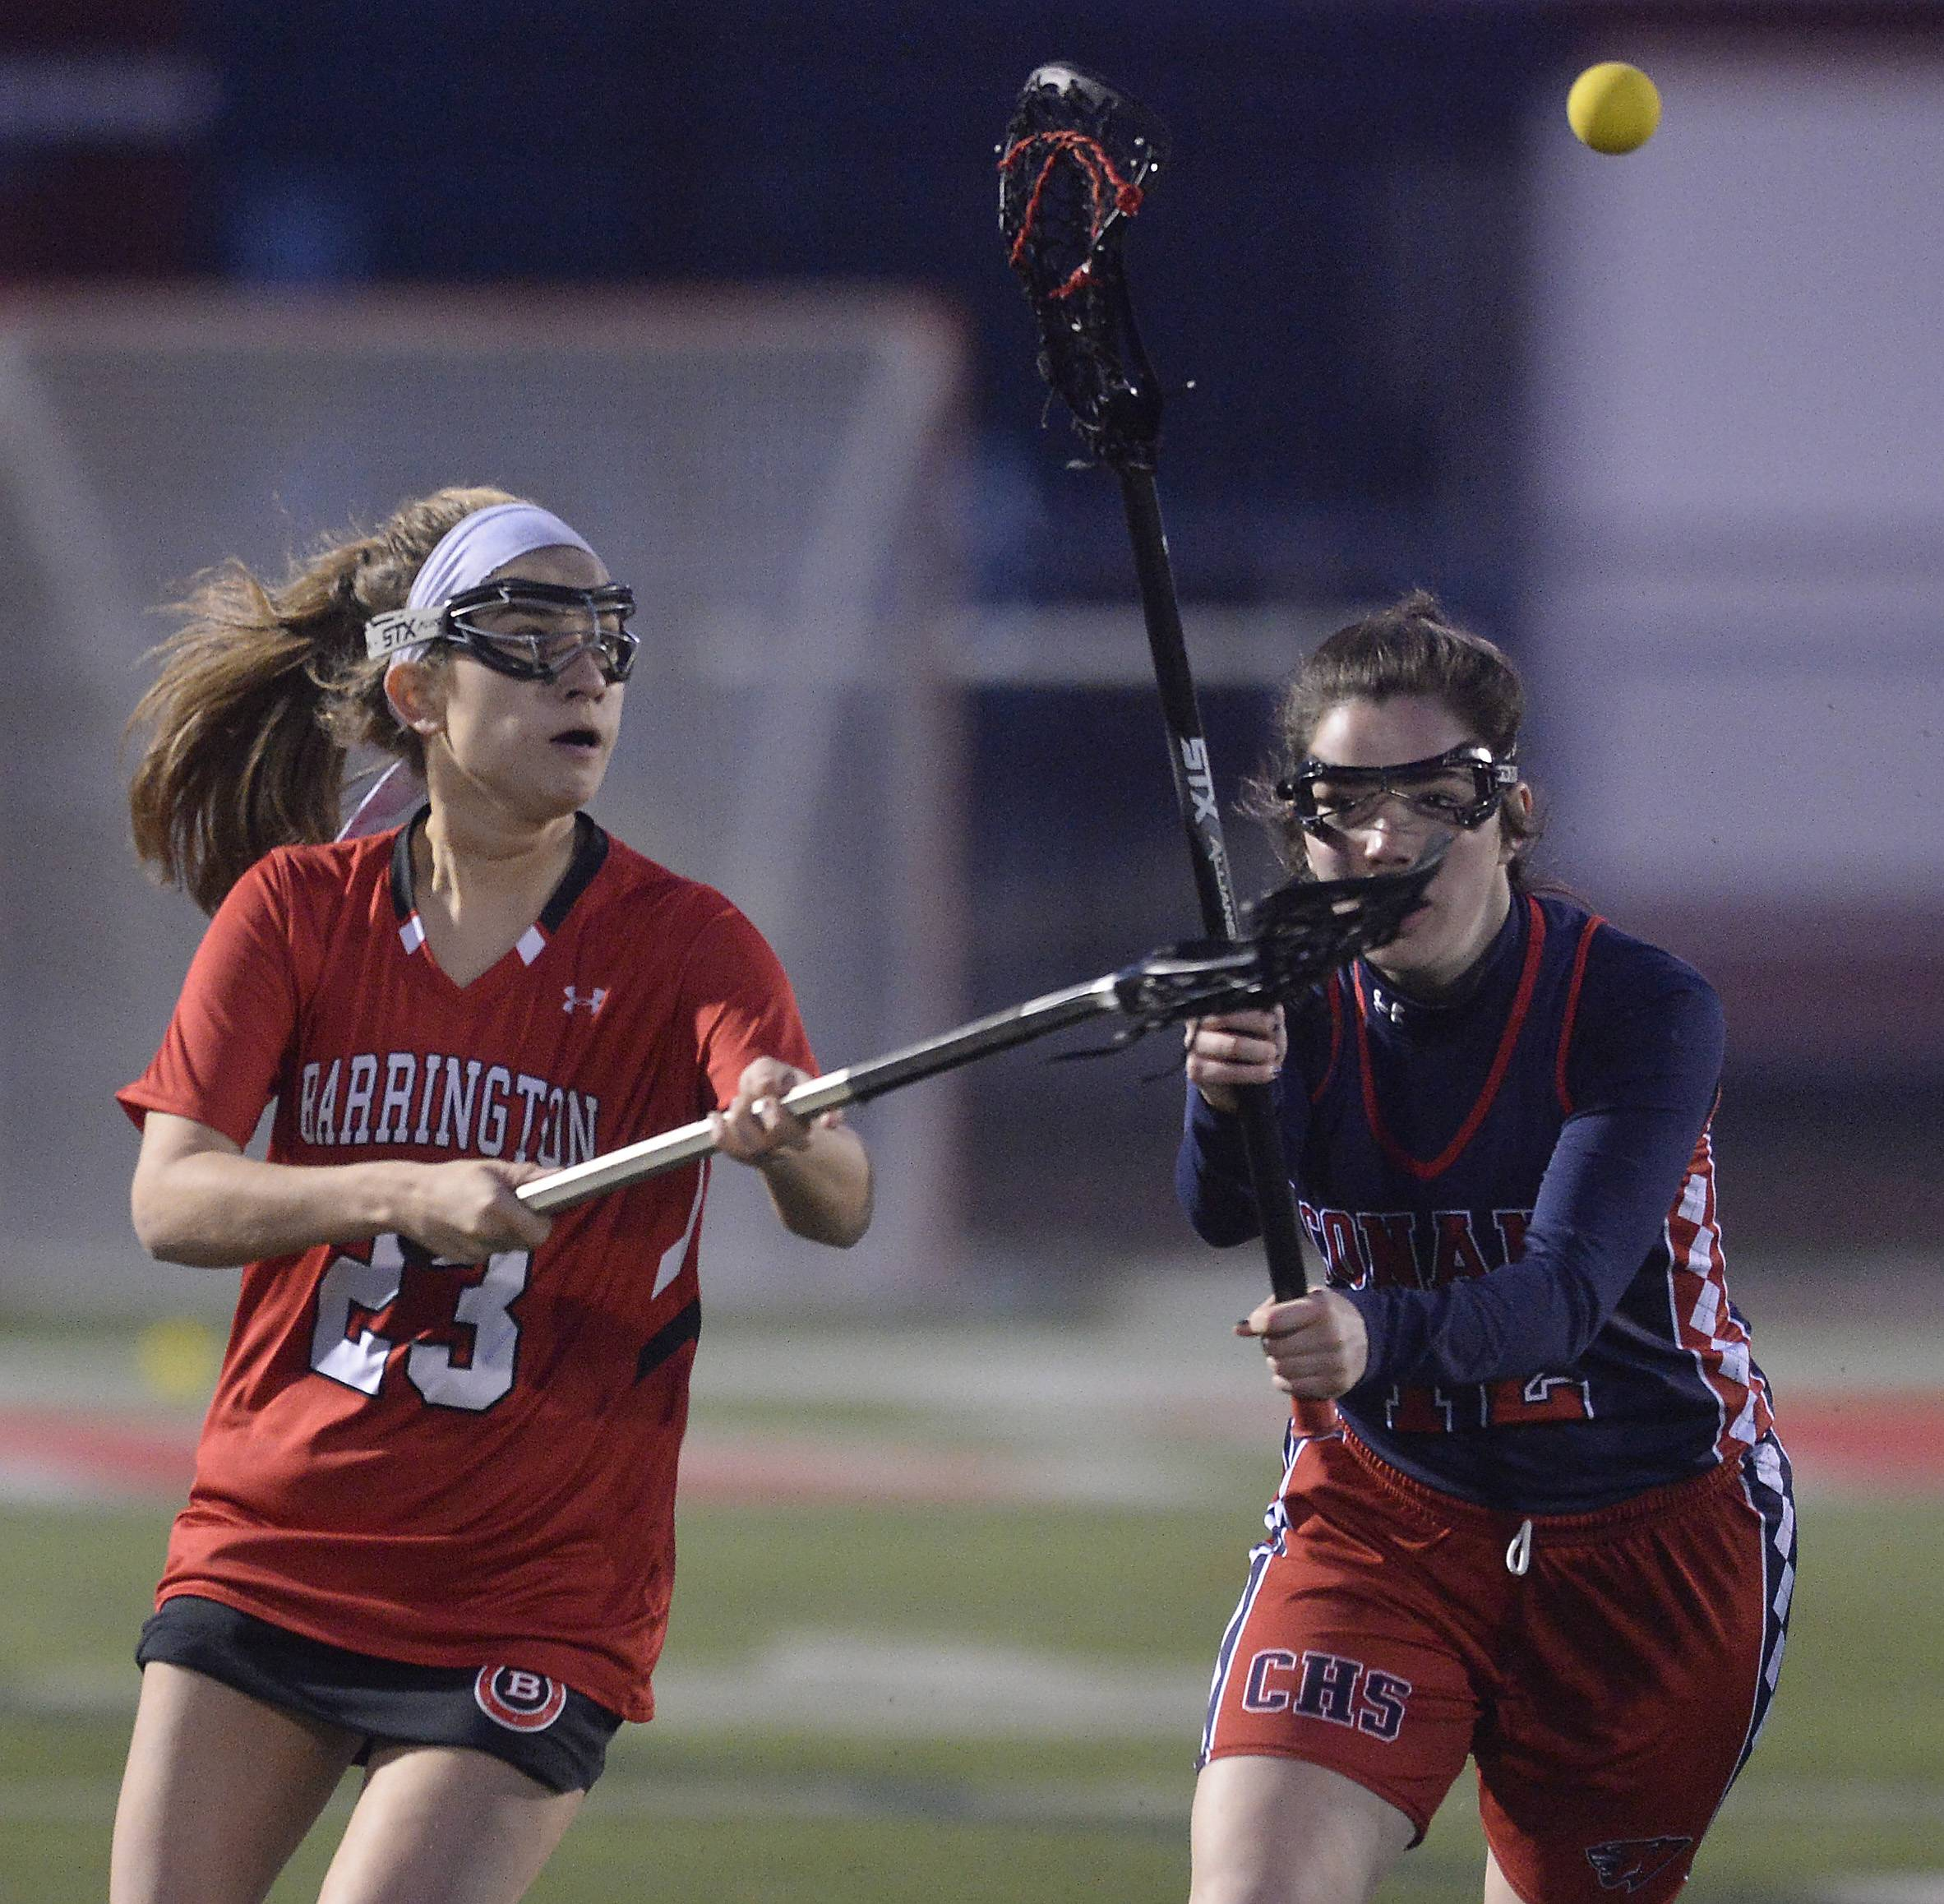 Barrington's Morgan Thorndyke eyes the ball as Conant's Mallory Mills applies defense in girls varsity Lacrosse at Barrington.